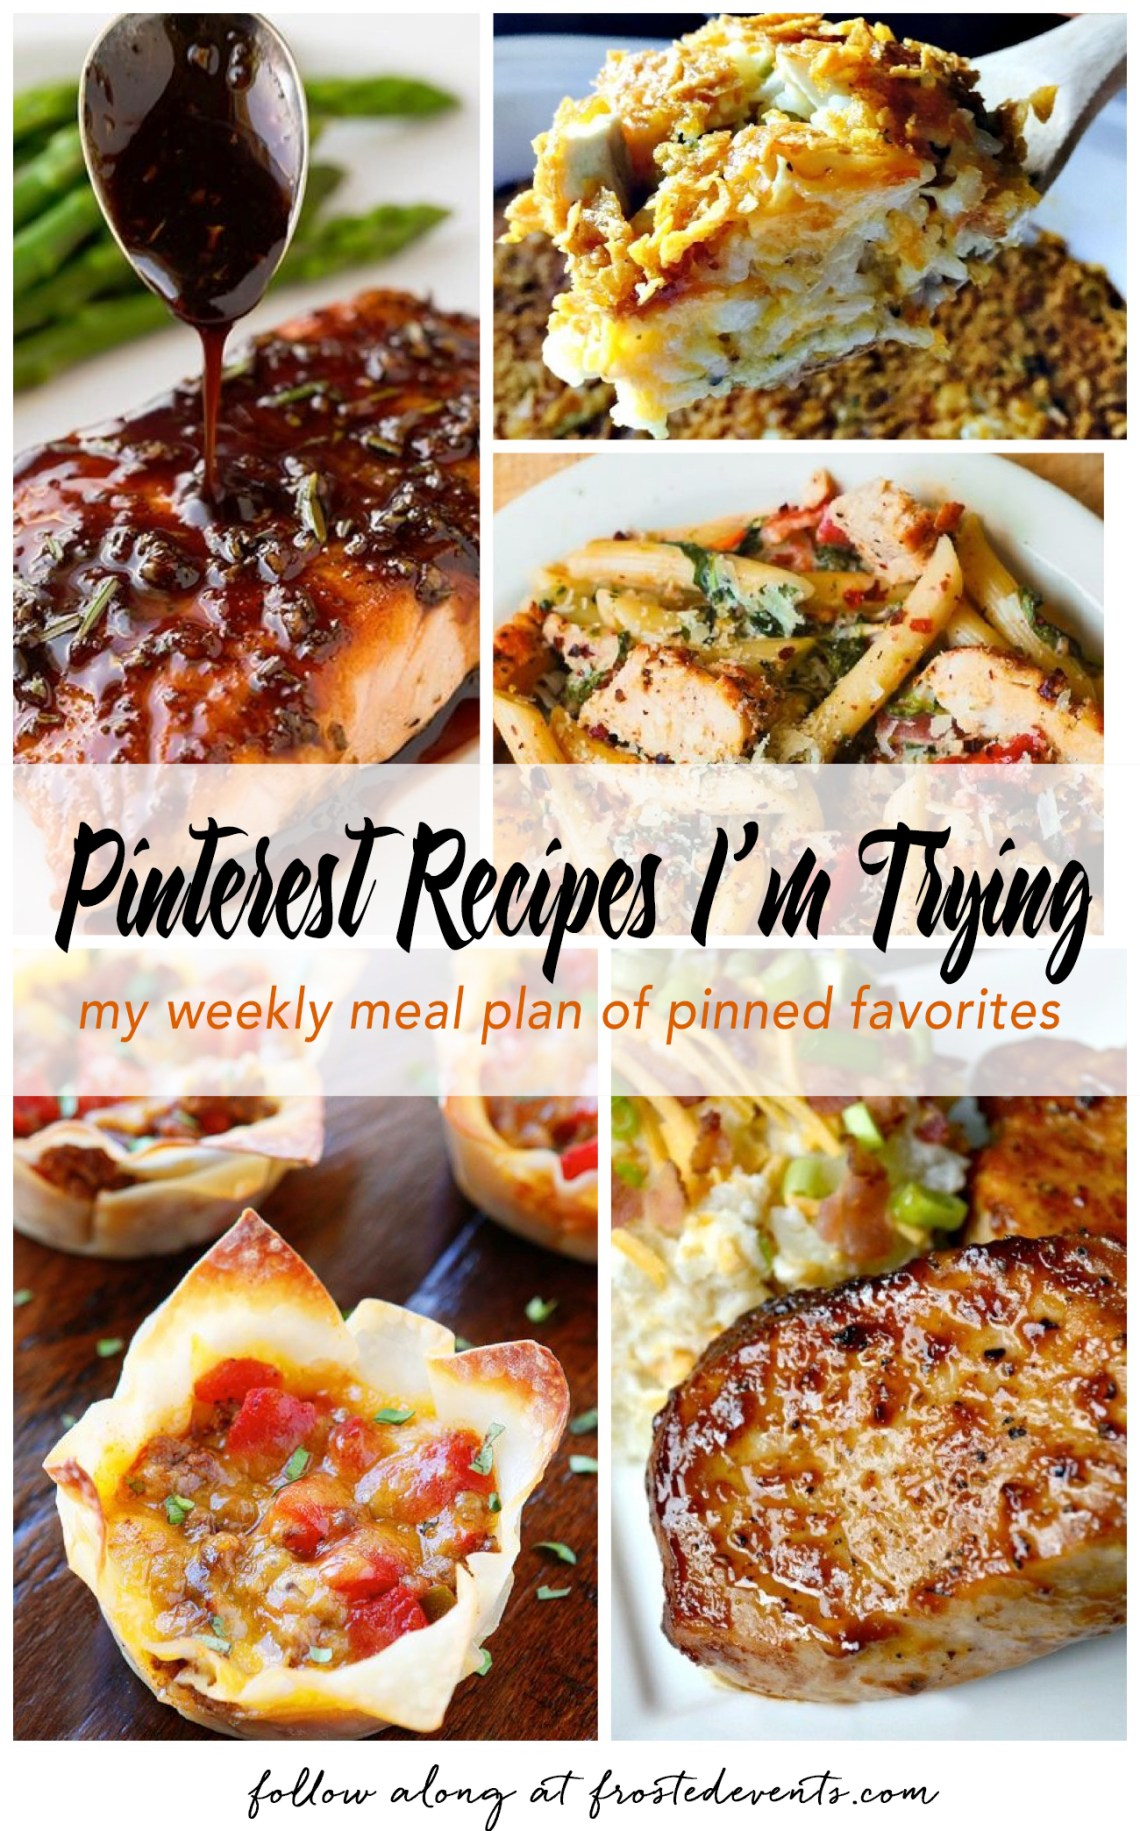 Pinterest Recipes- My Weekly Meal Plan of Pinterest Favorite Recipes  frostedeventscom